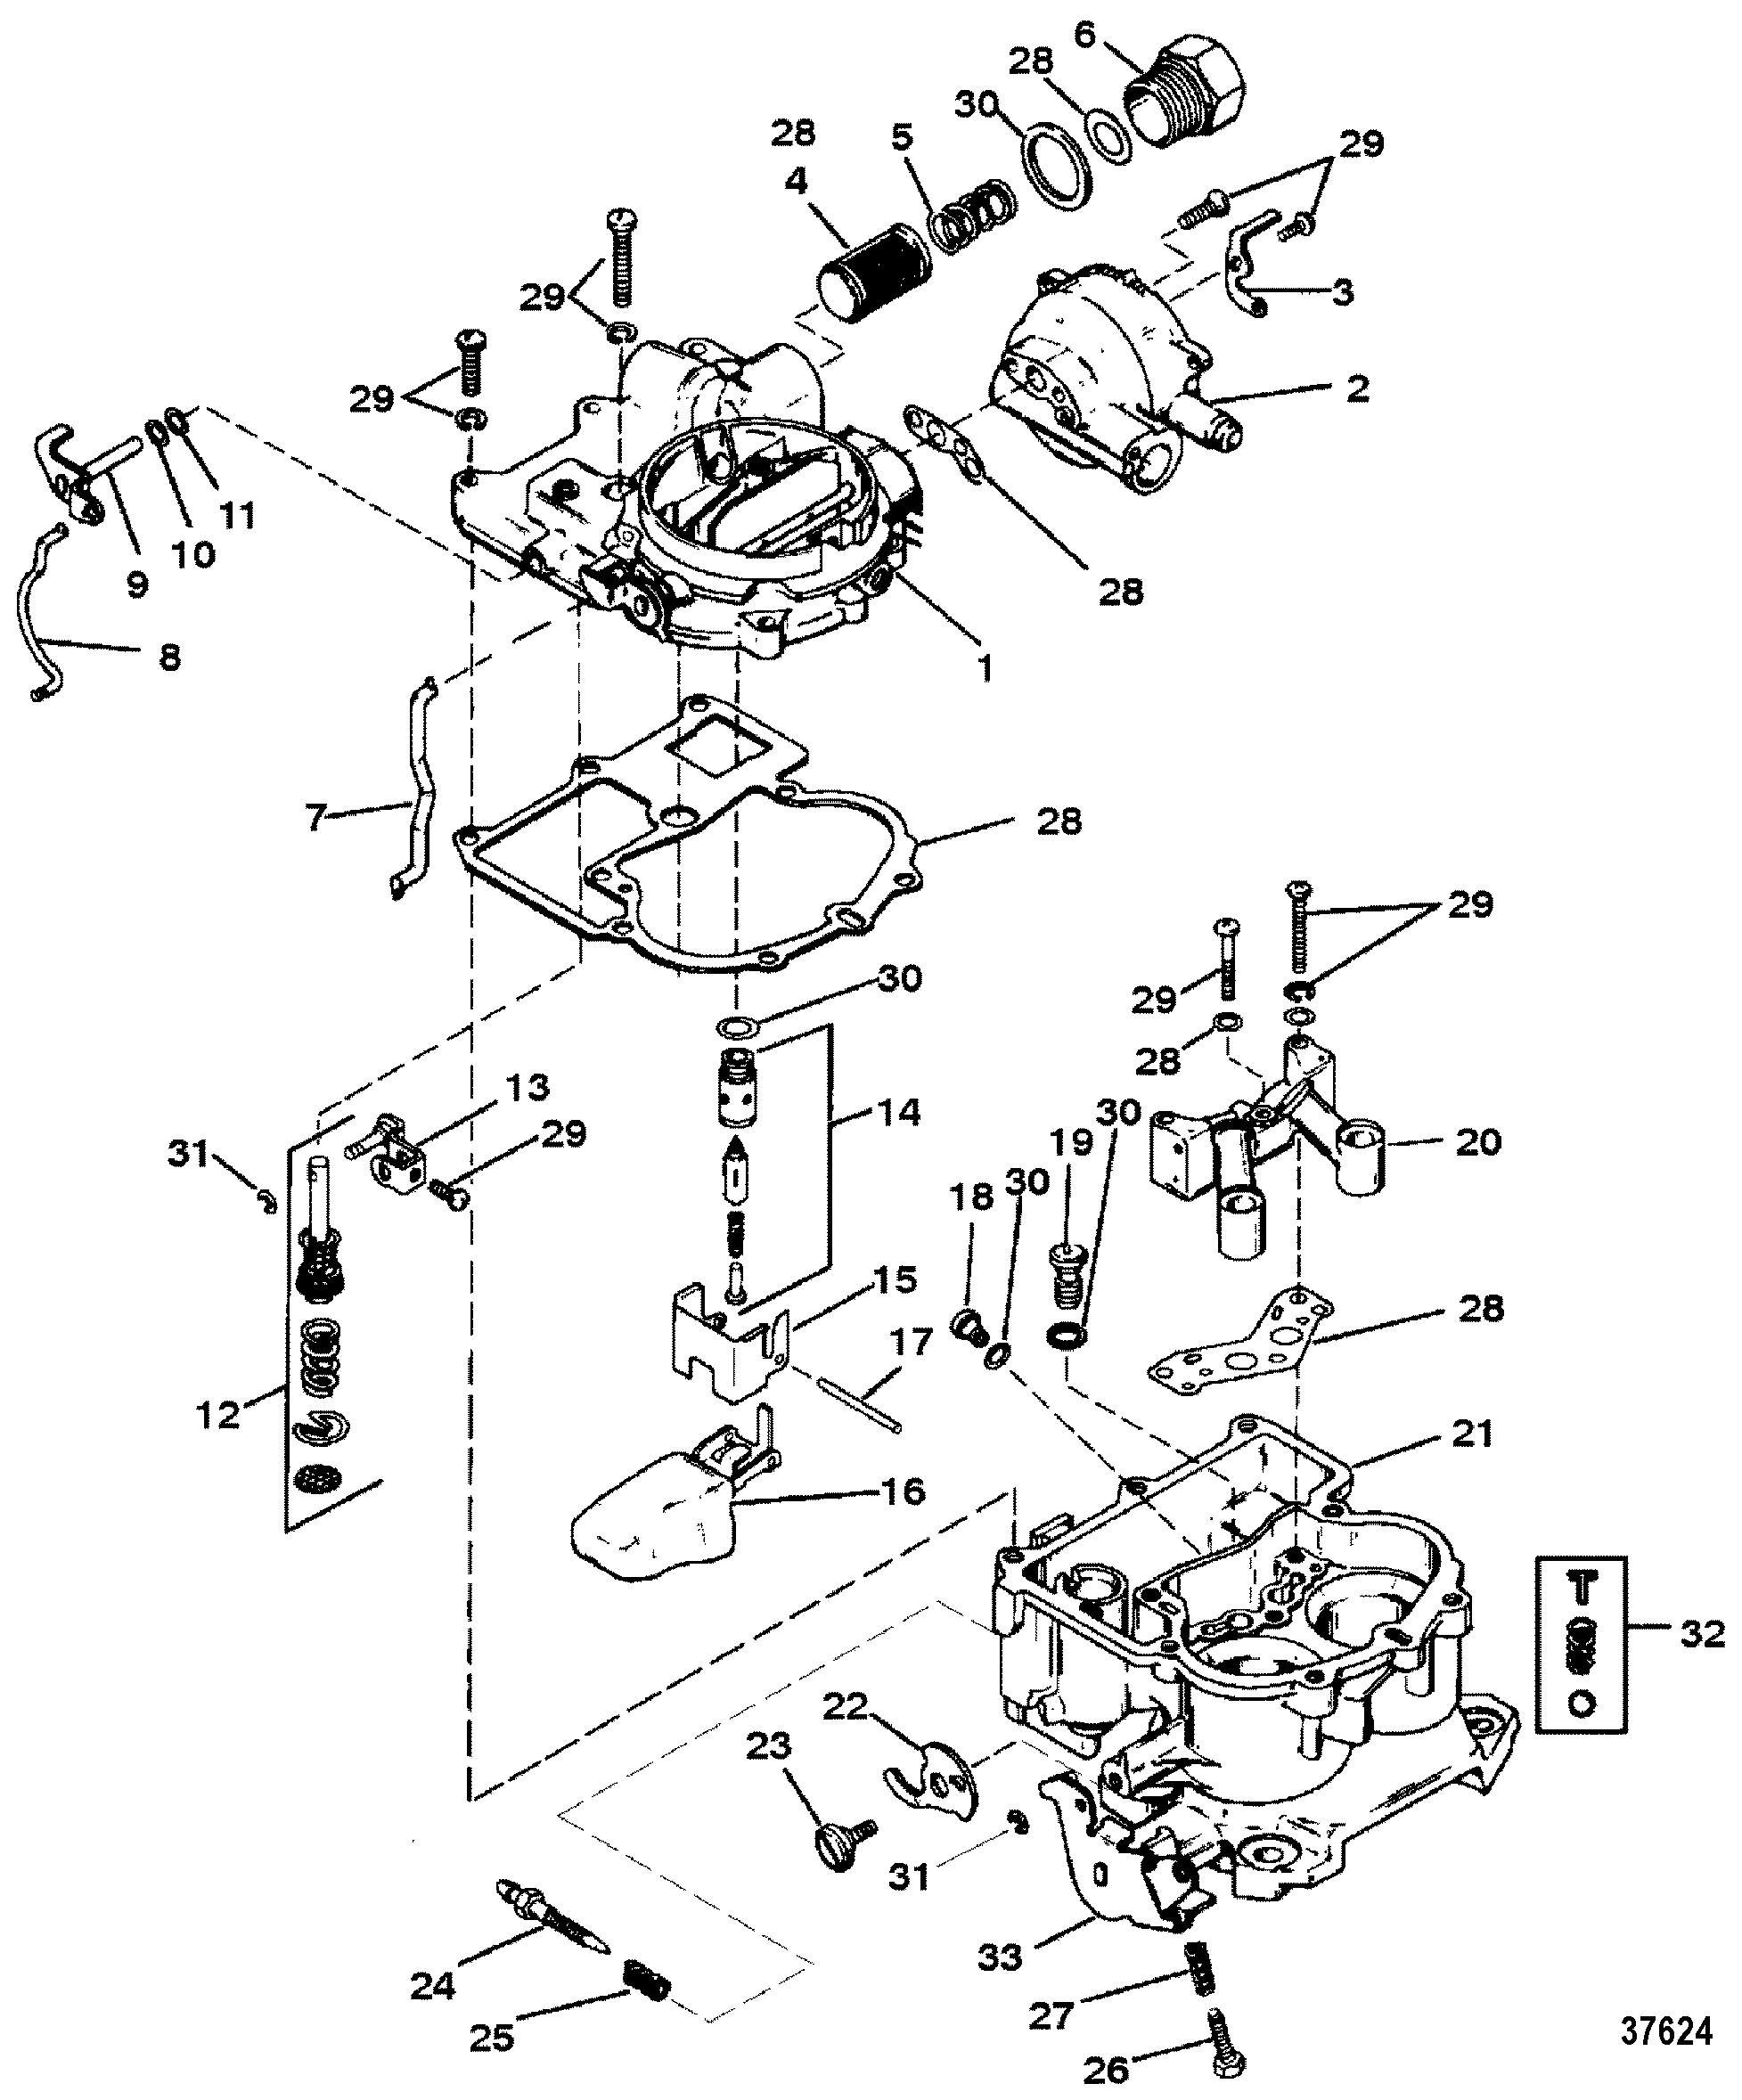 hardin marine carburetor mercarb 2 barrel  section drawing hover or click to view larger